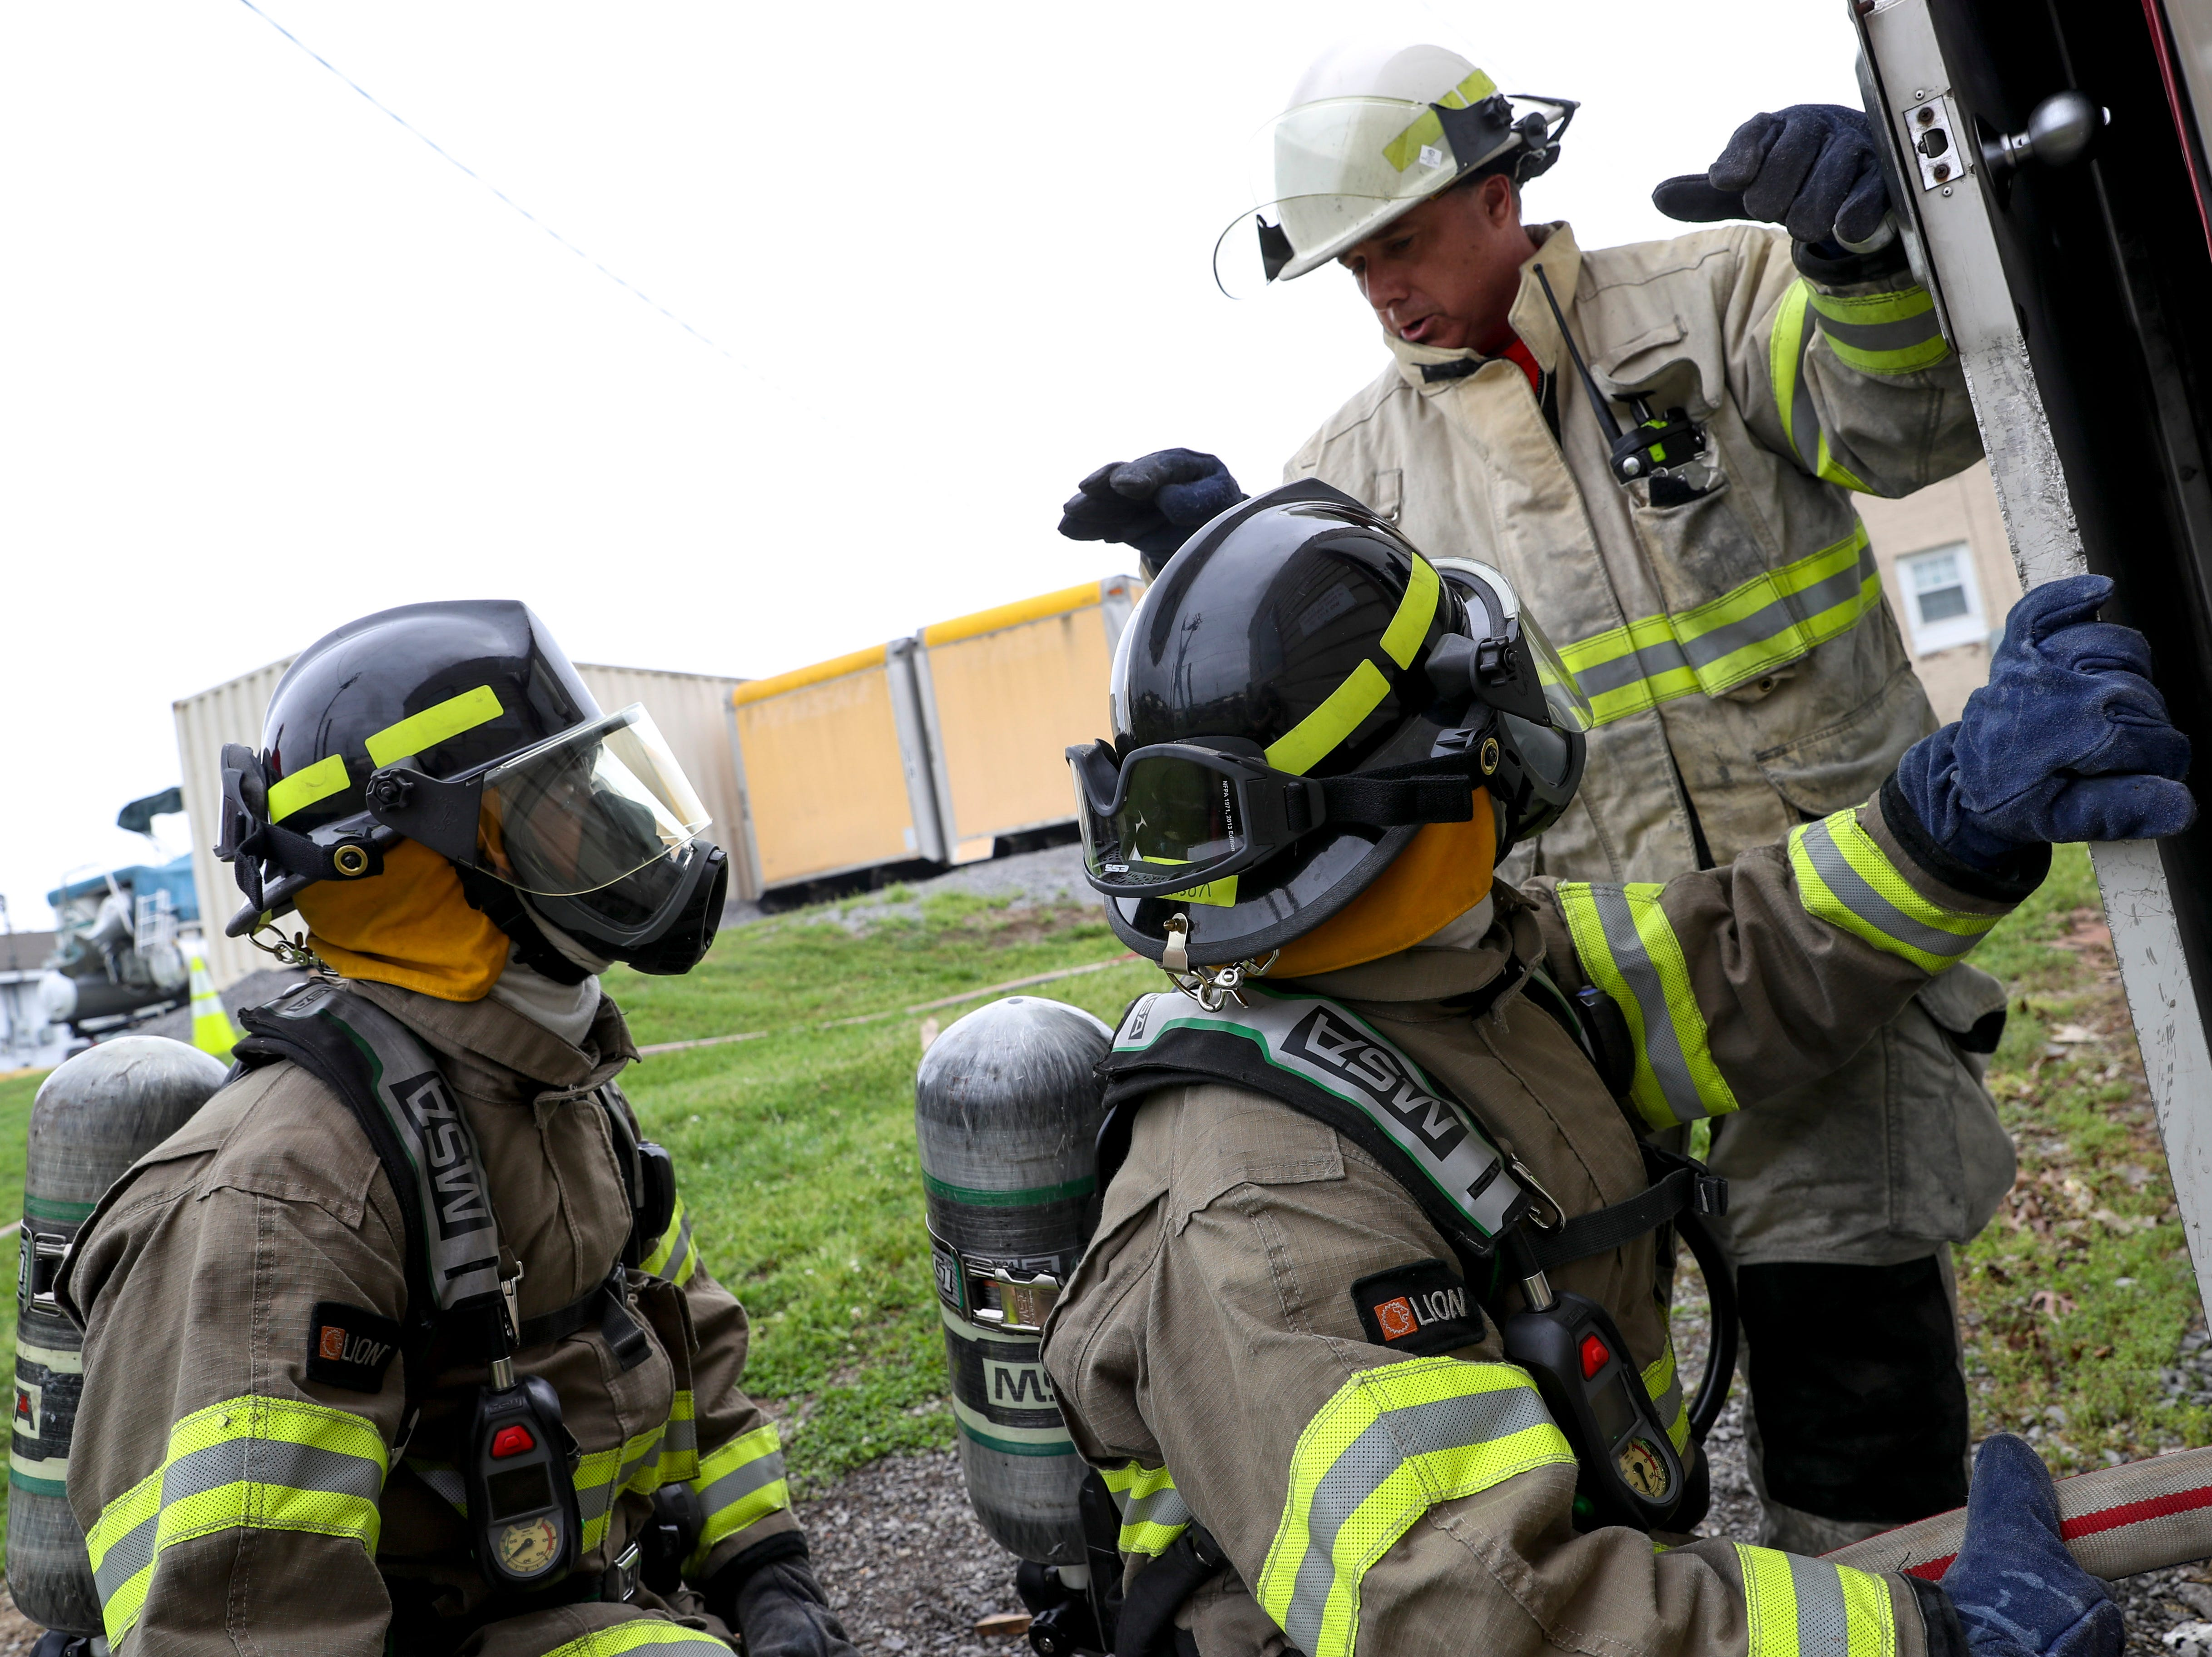 Assistant Chief Randy Ellis instructs new recruits before they head in to the burn building at Clarksville Fire Rescue in Clarksville, Tenn., on Friday, May 10, 2019.